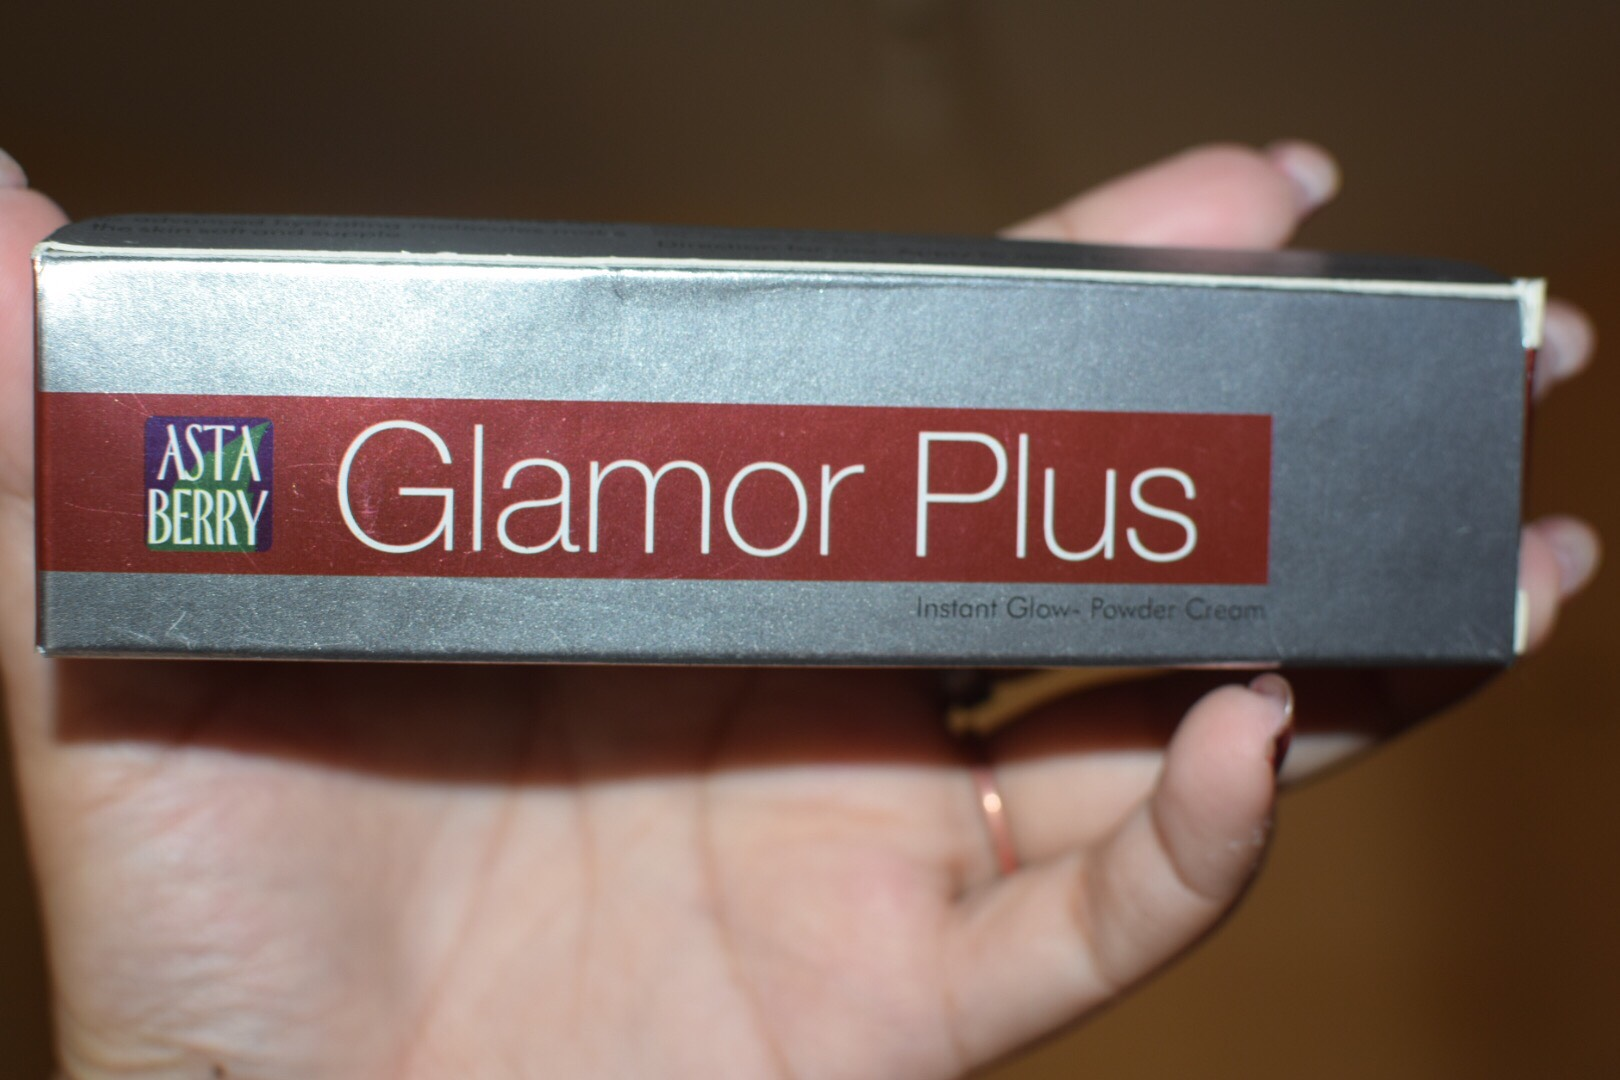 Astaberry Glamor Plus Instant Glow Powder Cream Review